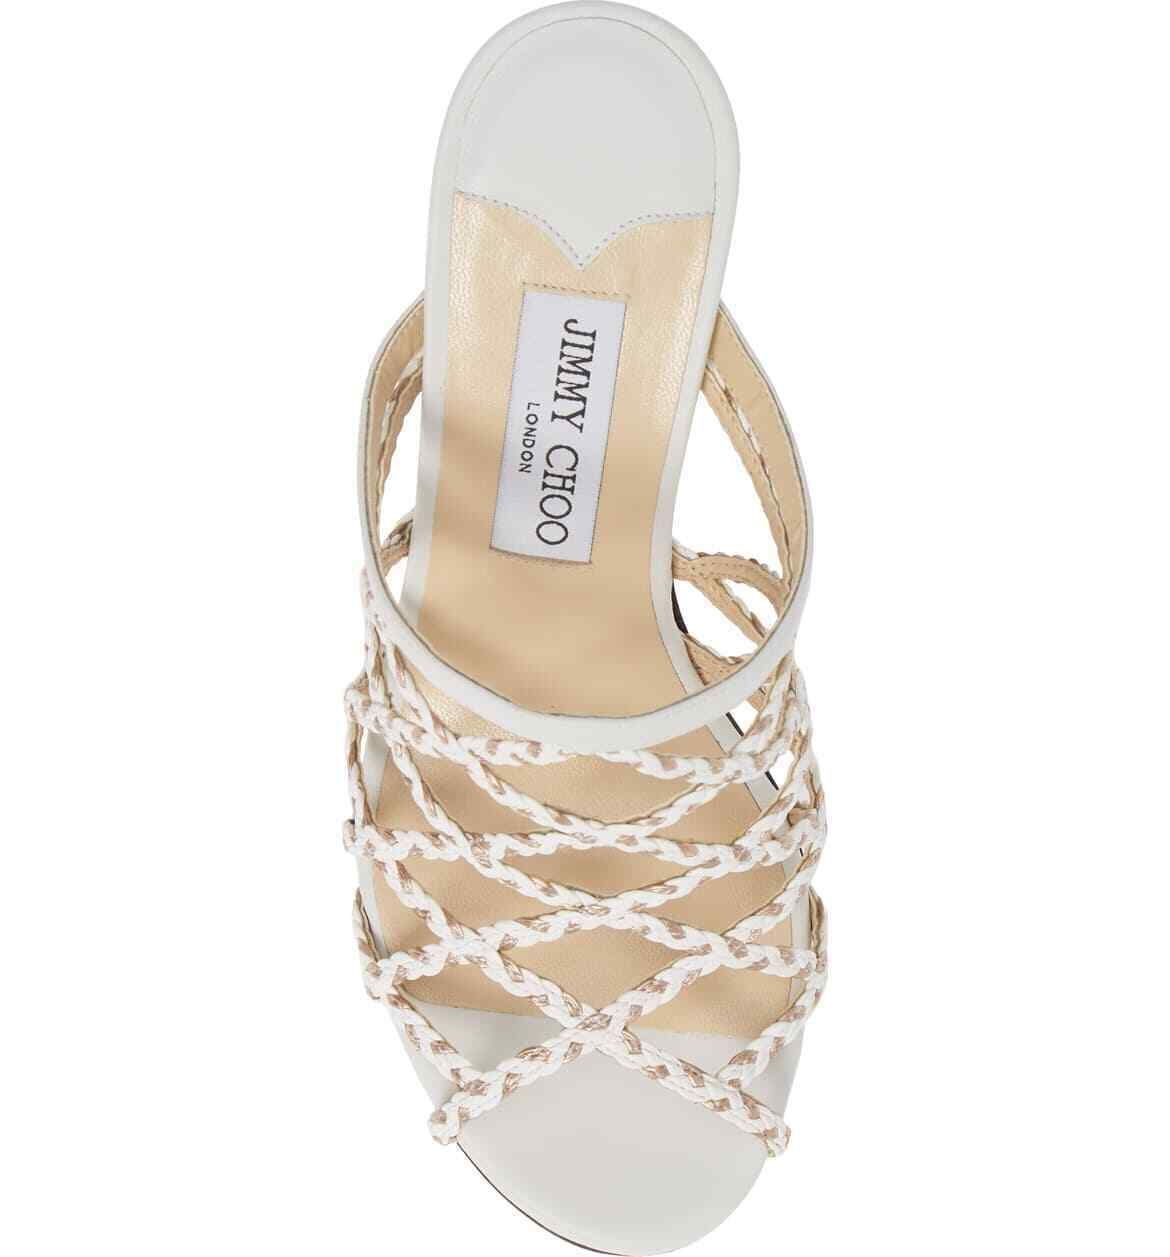 JIMMY CHOO Platform Slide Sandals Size 35.5 MSRP: $595.00